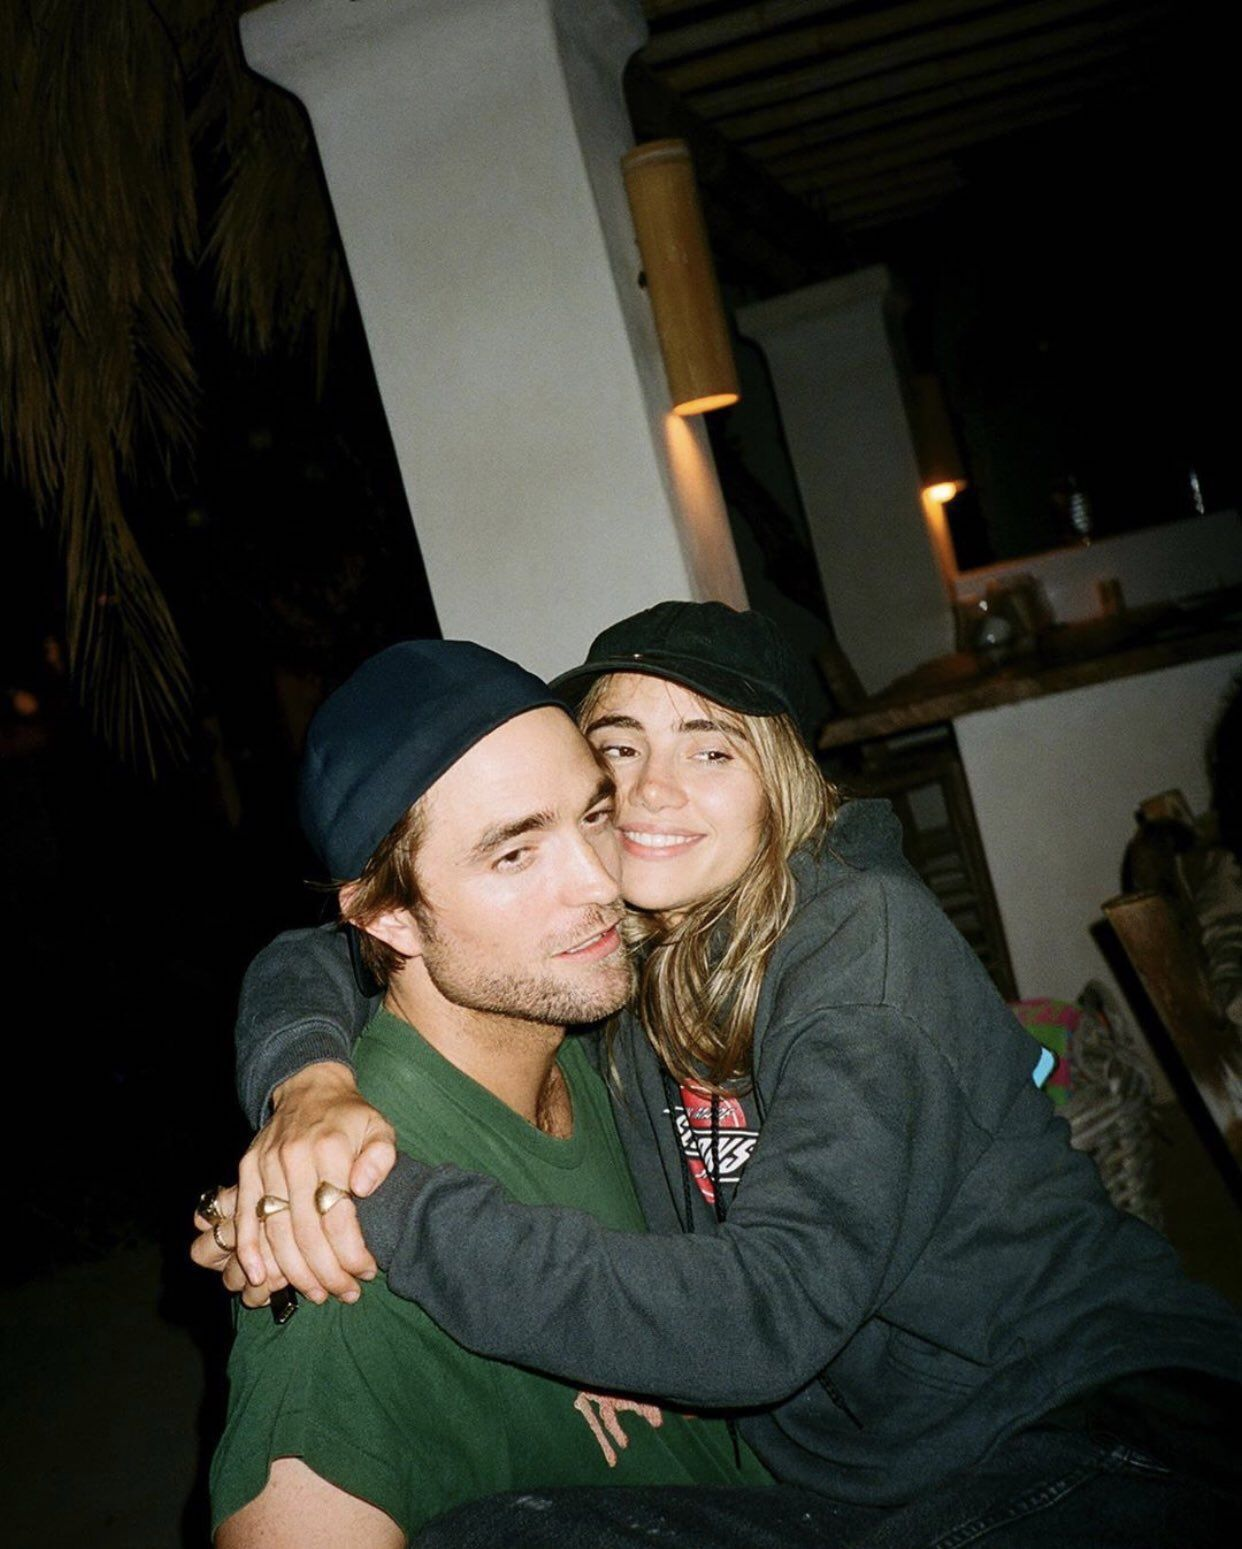 Robert Pattinson appears to be madly in love with his girlfriend of two years, Suki Waterhouse. Will they be getting married soon?